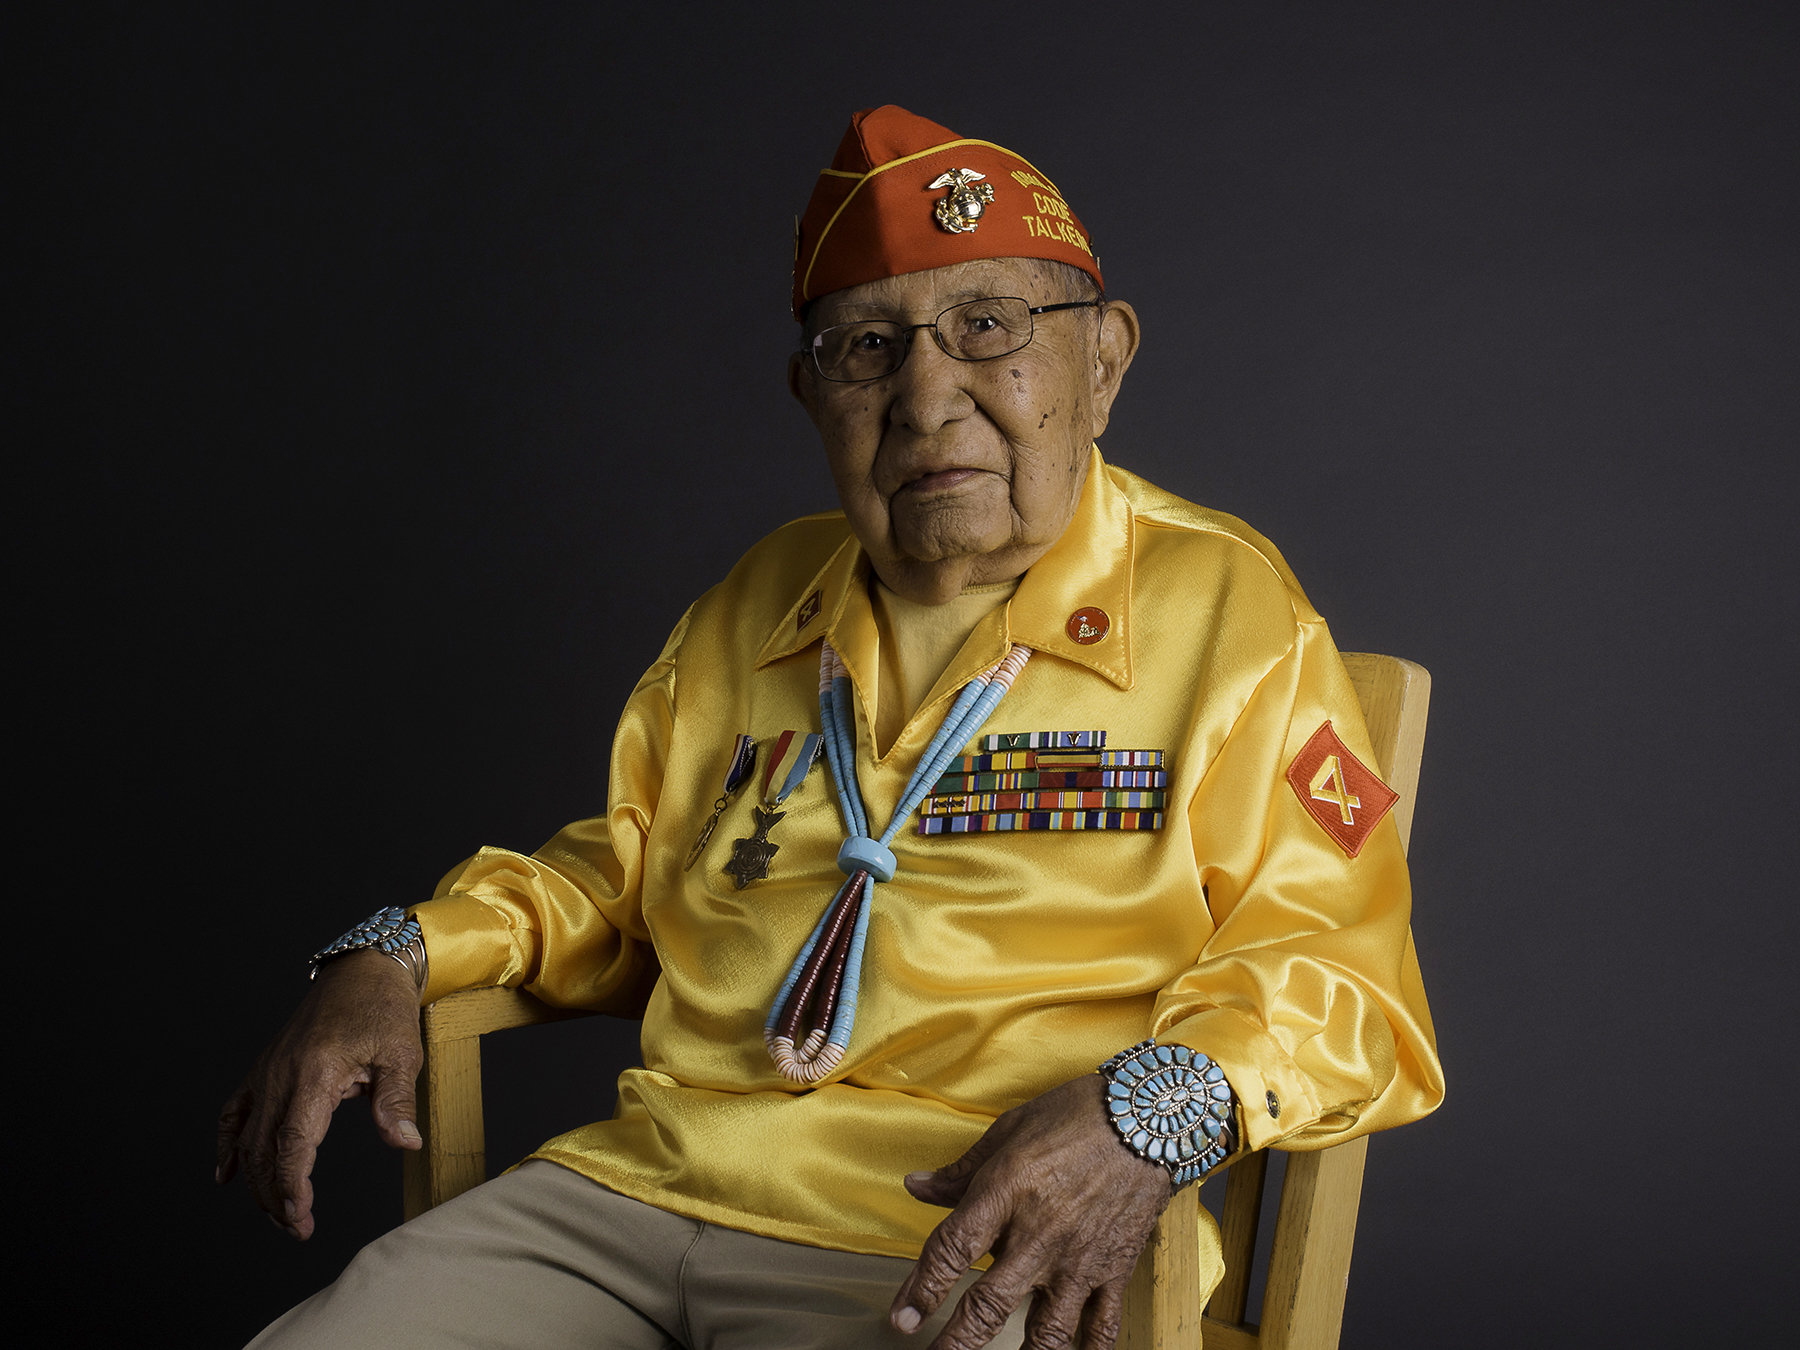 Navajo Nation mourns passing of Code Talker David Patterson Sr. at age of 94